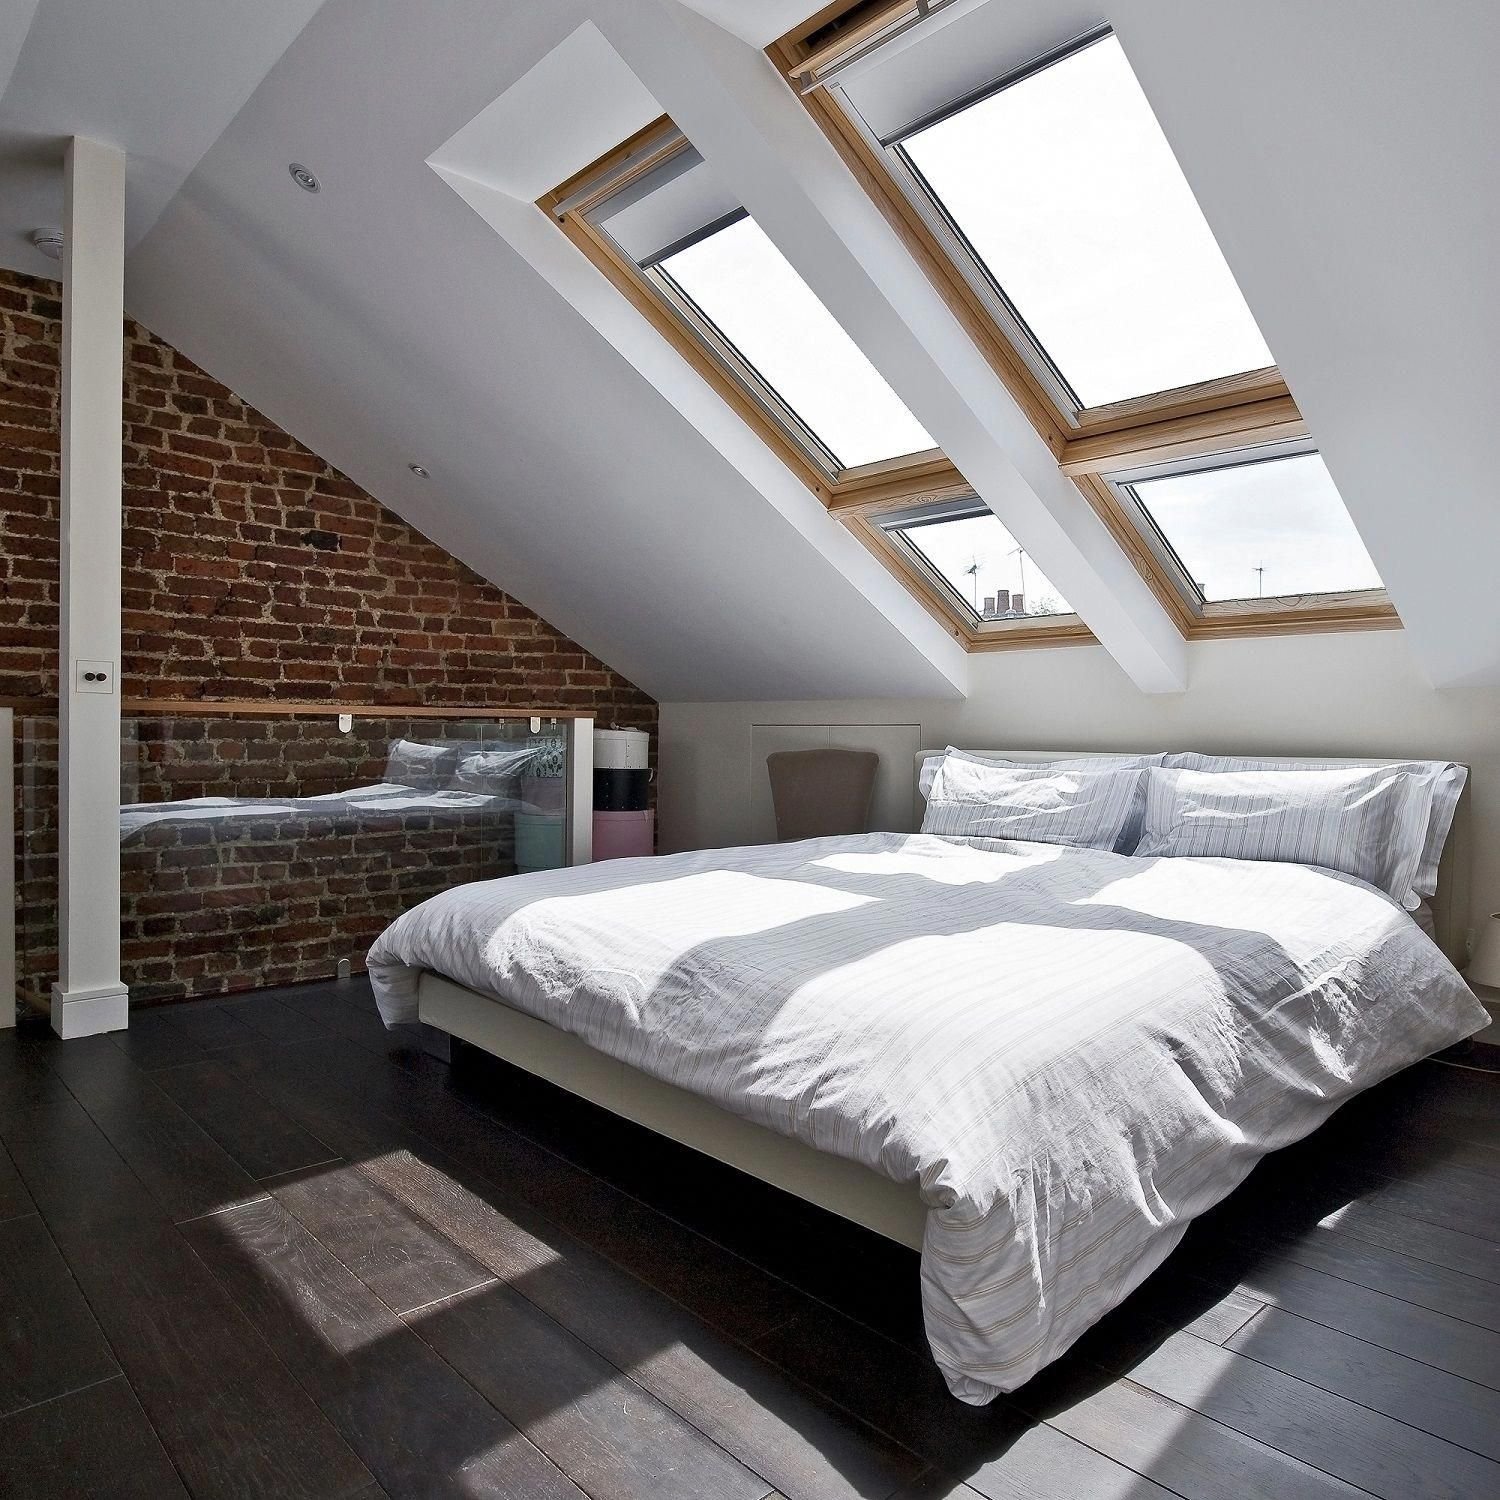 Loft bedroom layout ideas  Featuring a range of loft bedroom ideas to suit any loft conversion